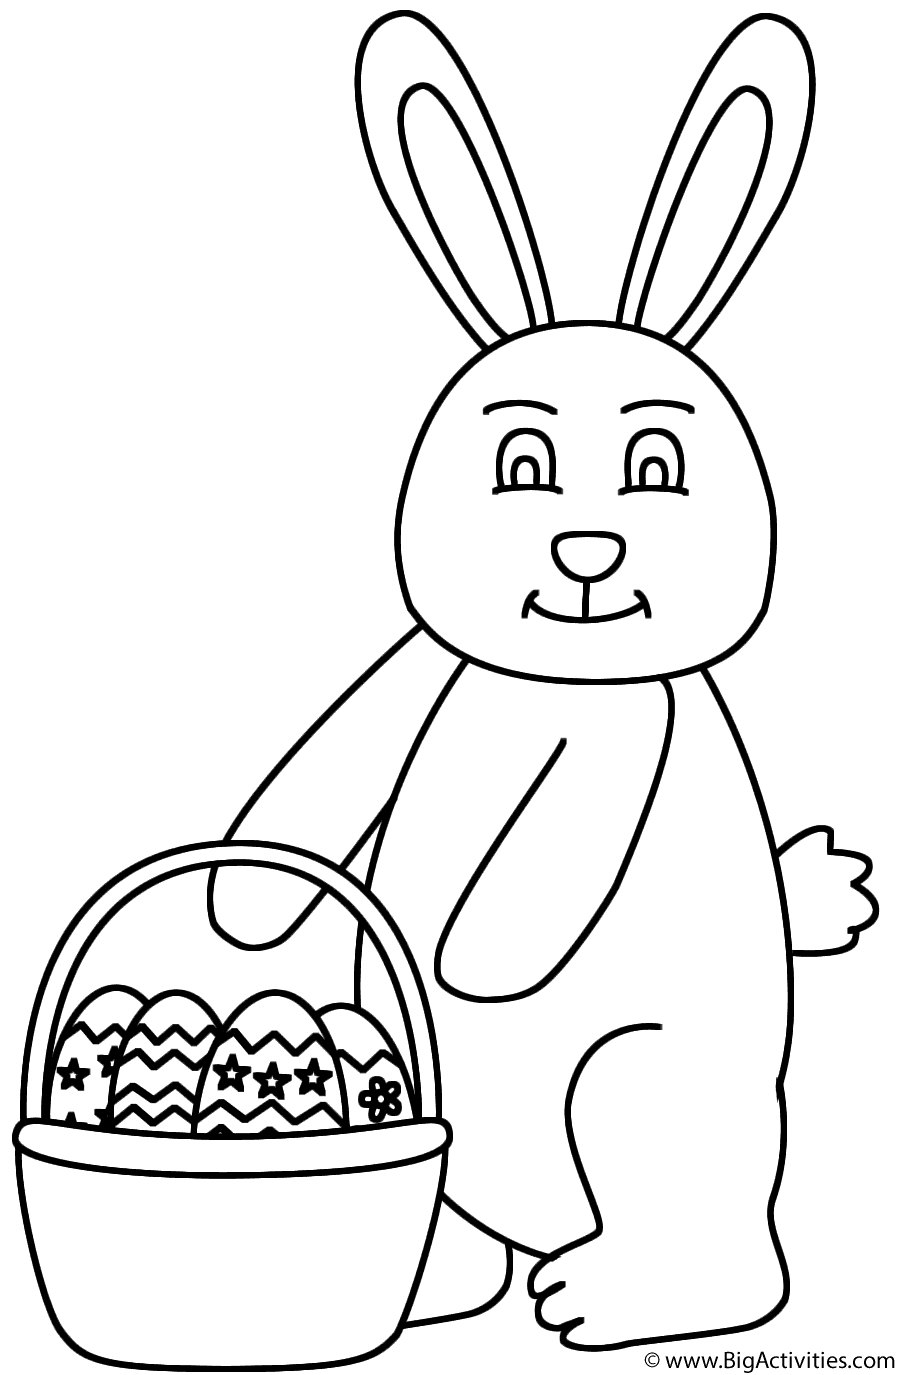 900x1375 Easter Bunny Holding Basket Of Easter Eggs